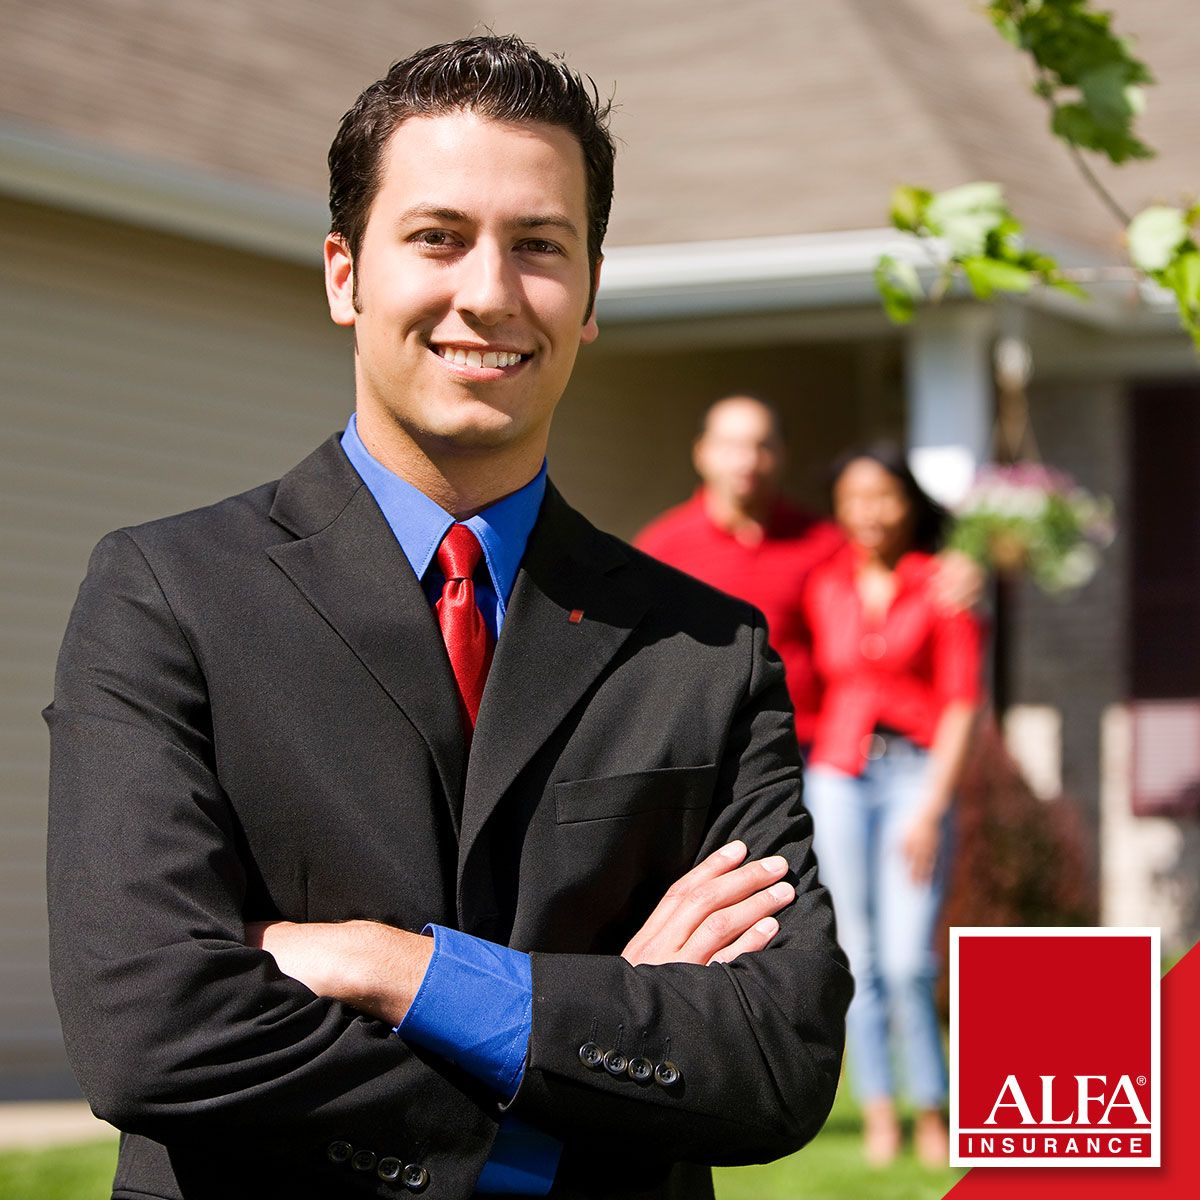 Get a free insurance quote from Alfa™ today! Alfa™ offers